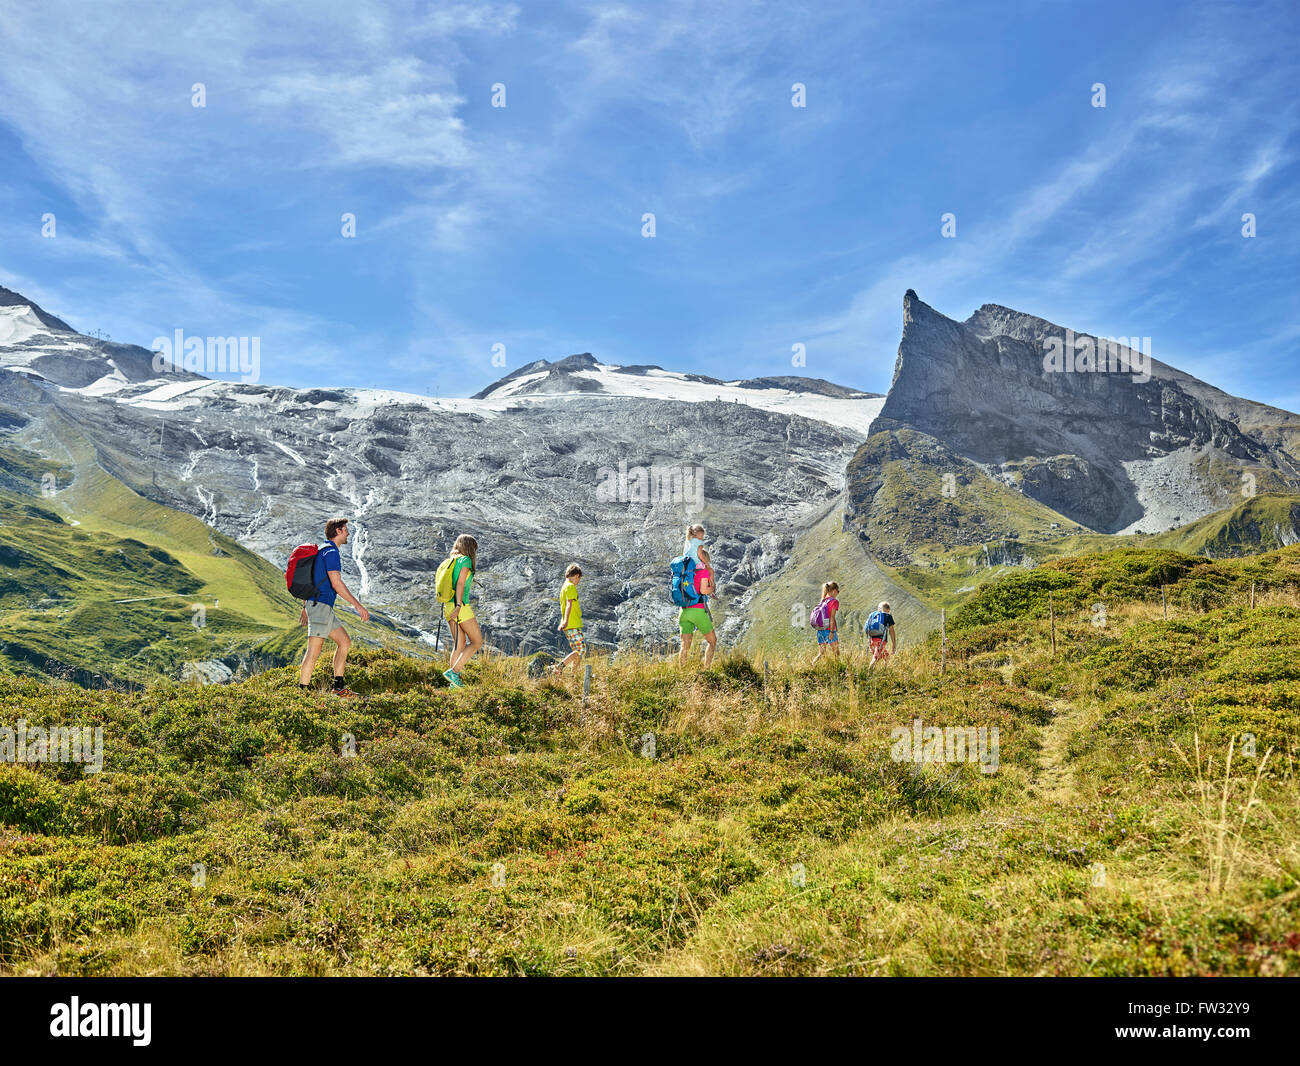 Family with five kids hiking in front of a mountain scenery, Hintertux, Zillertal, Tyrol, Austria - Stock Image